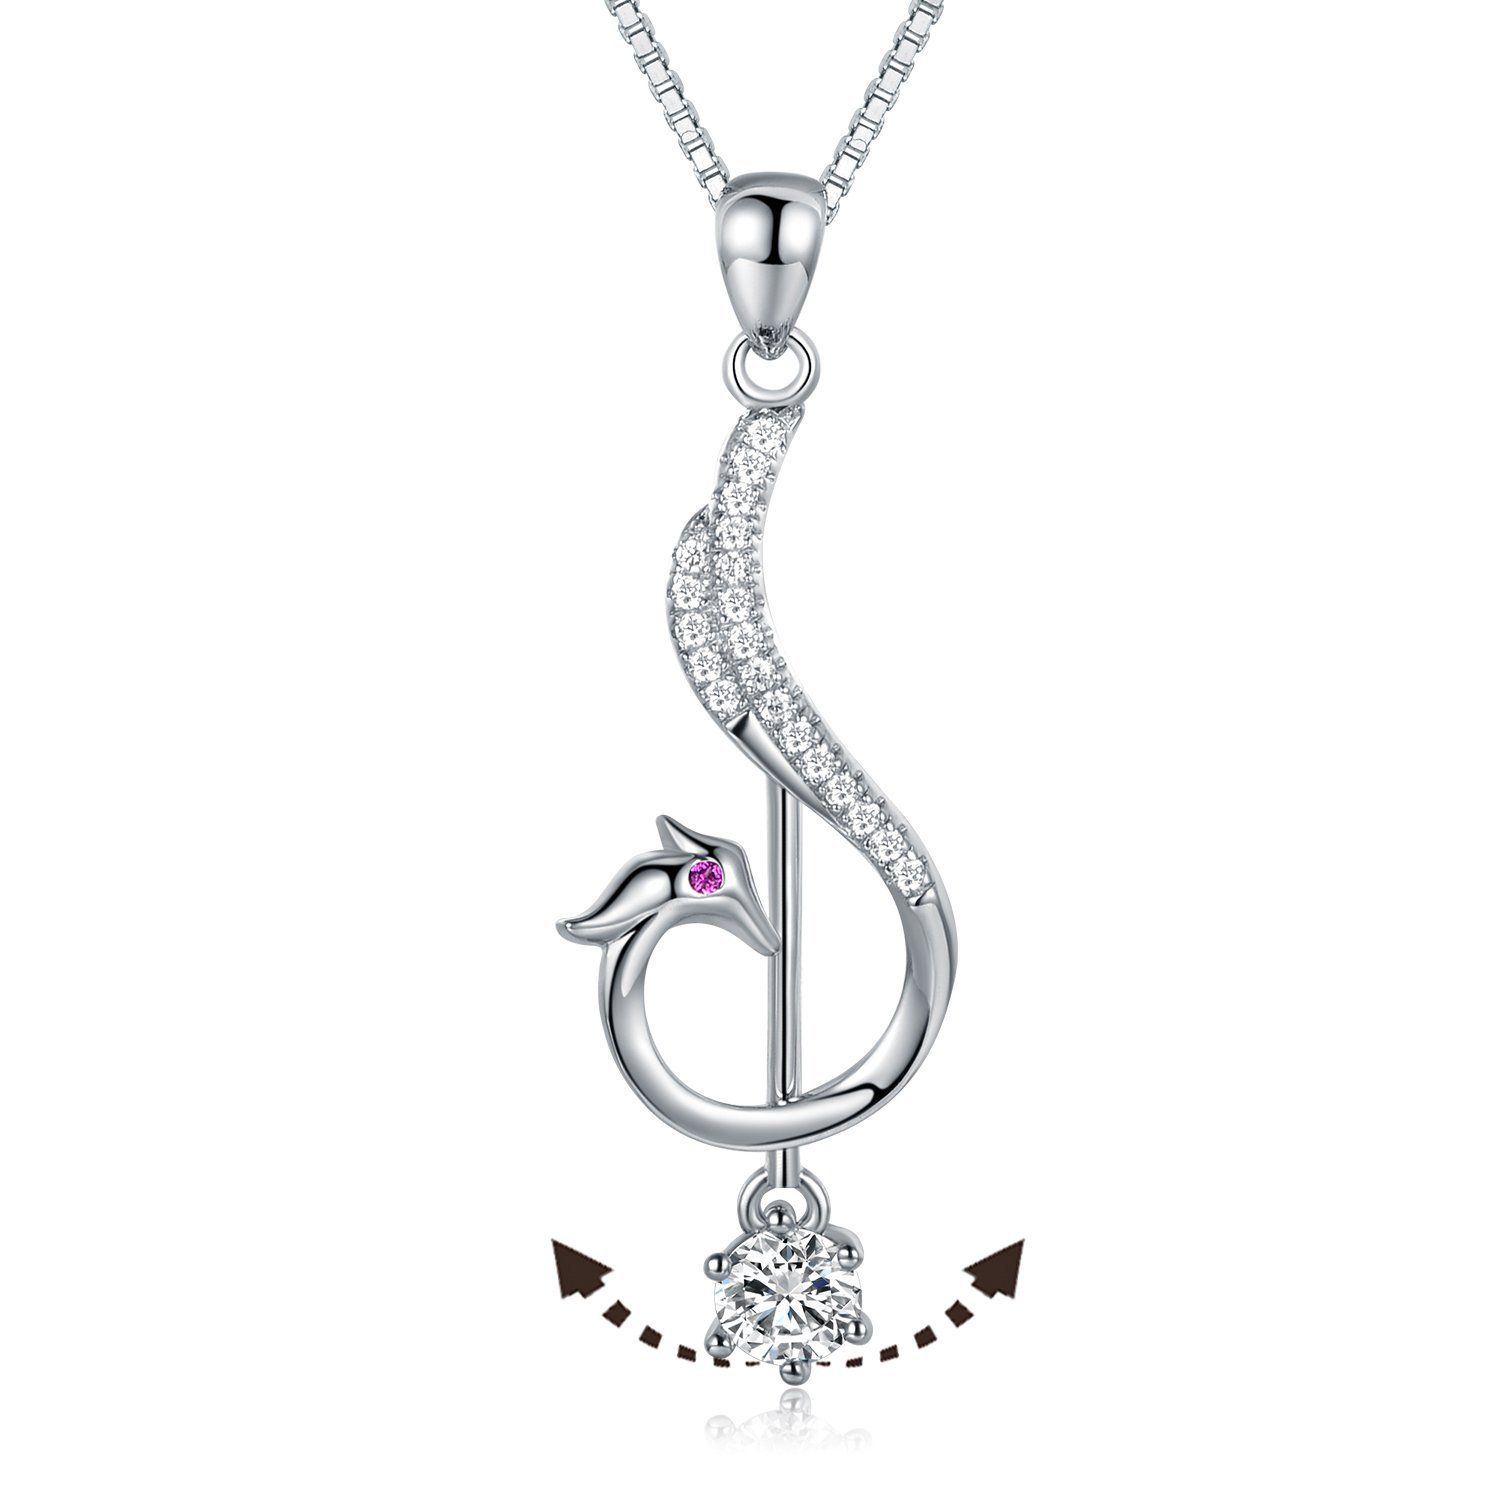 [JiangXin® Clearance sale] 925 Sterling Silver Simultated Diamond Pendant Necklace JqaRtHC